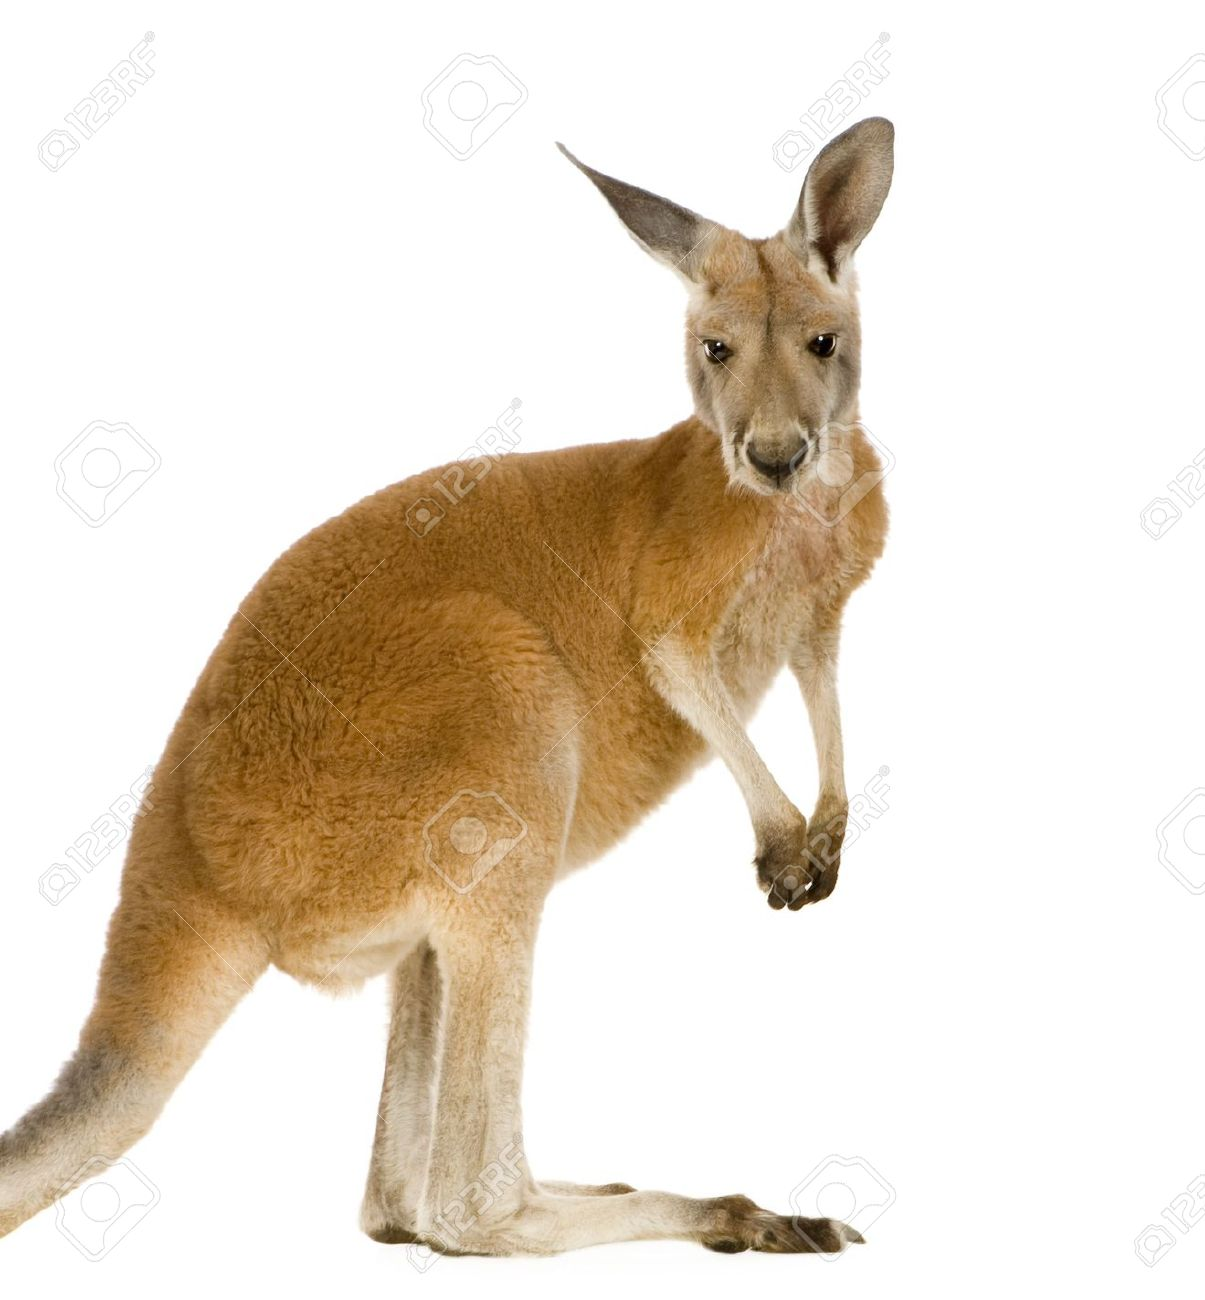 Images of Kangaroo | 1205x1300